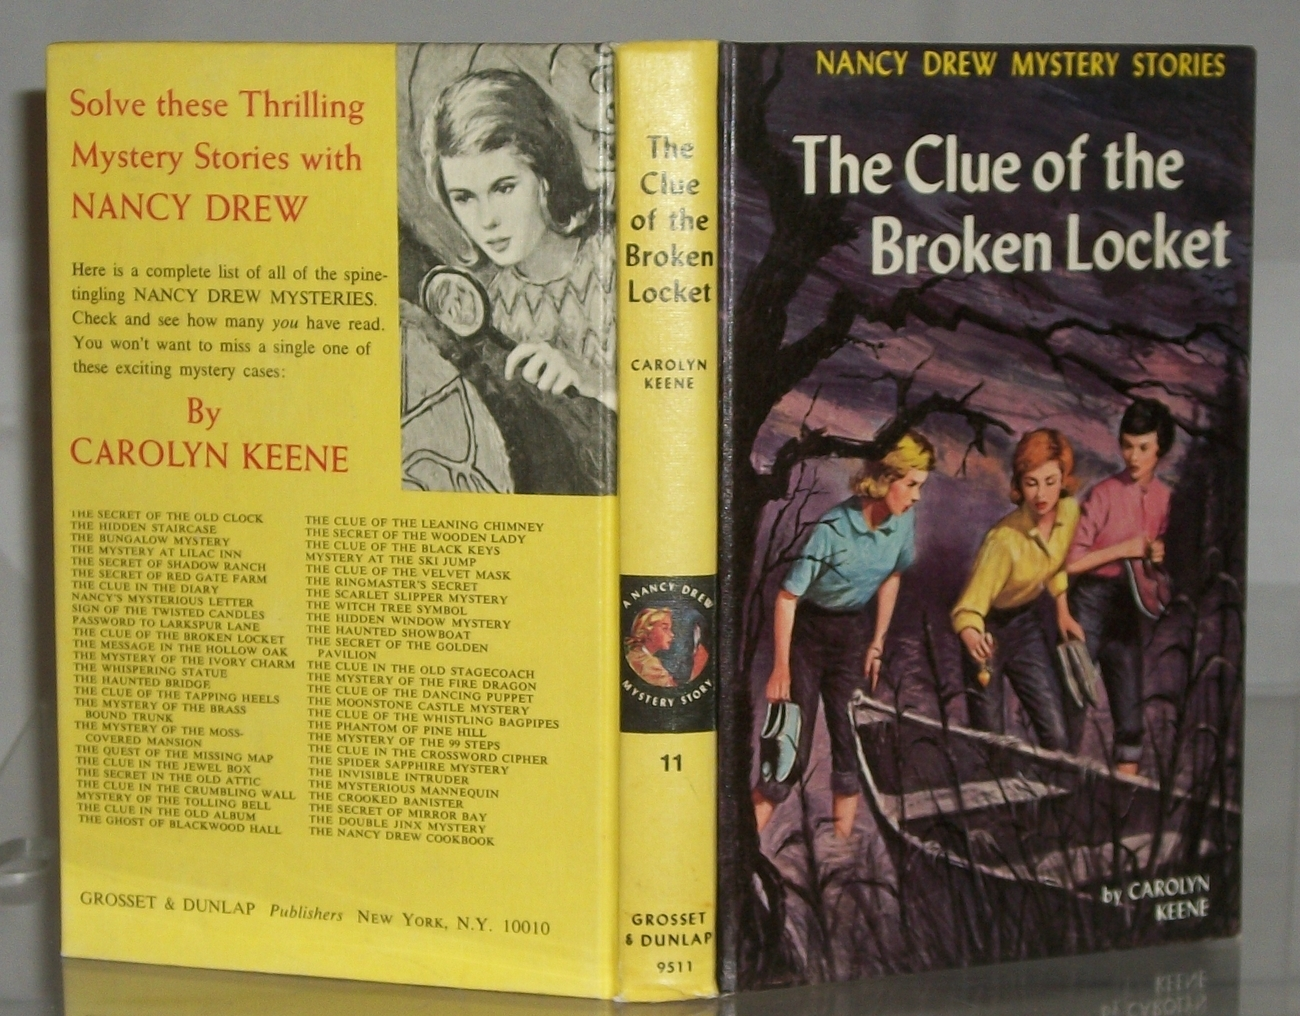 Nancy Drew #11 The Clue of the Broken Locket Vintage Yellow Picture Cover PC